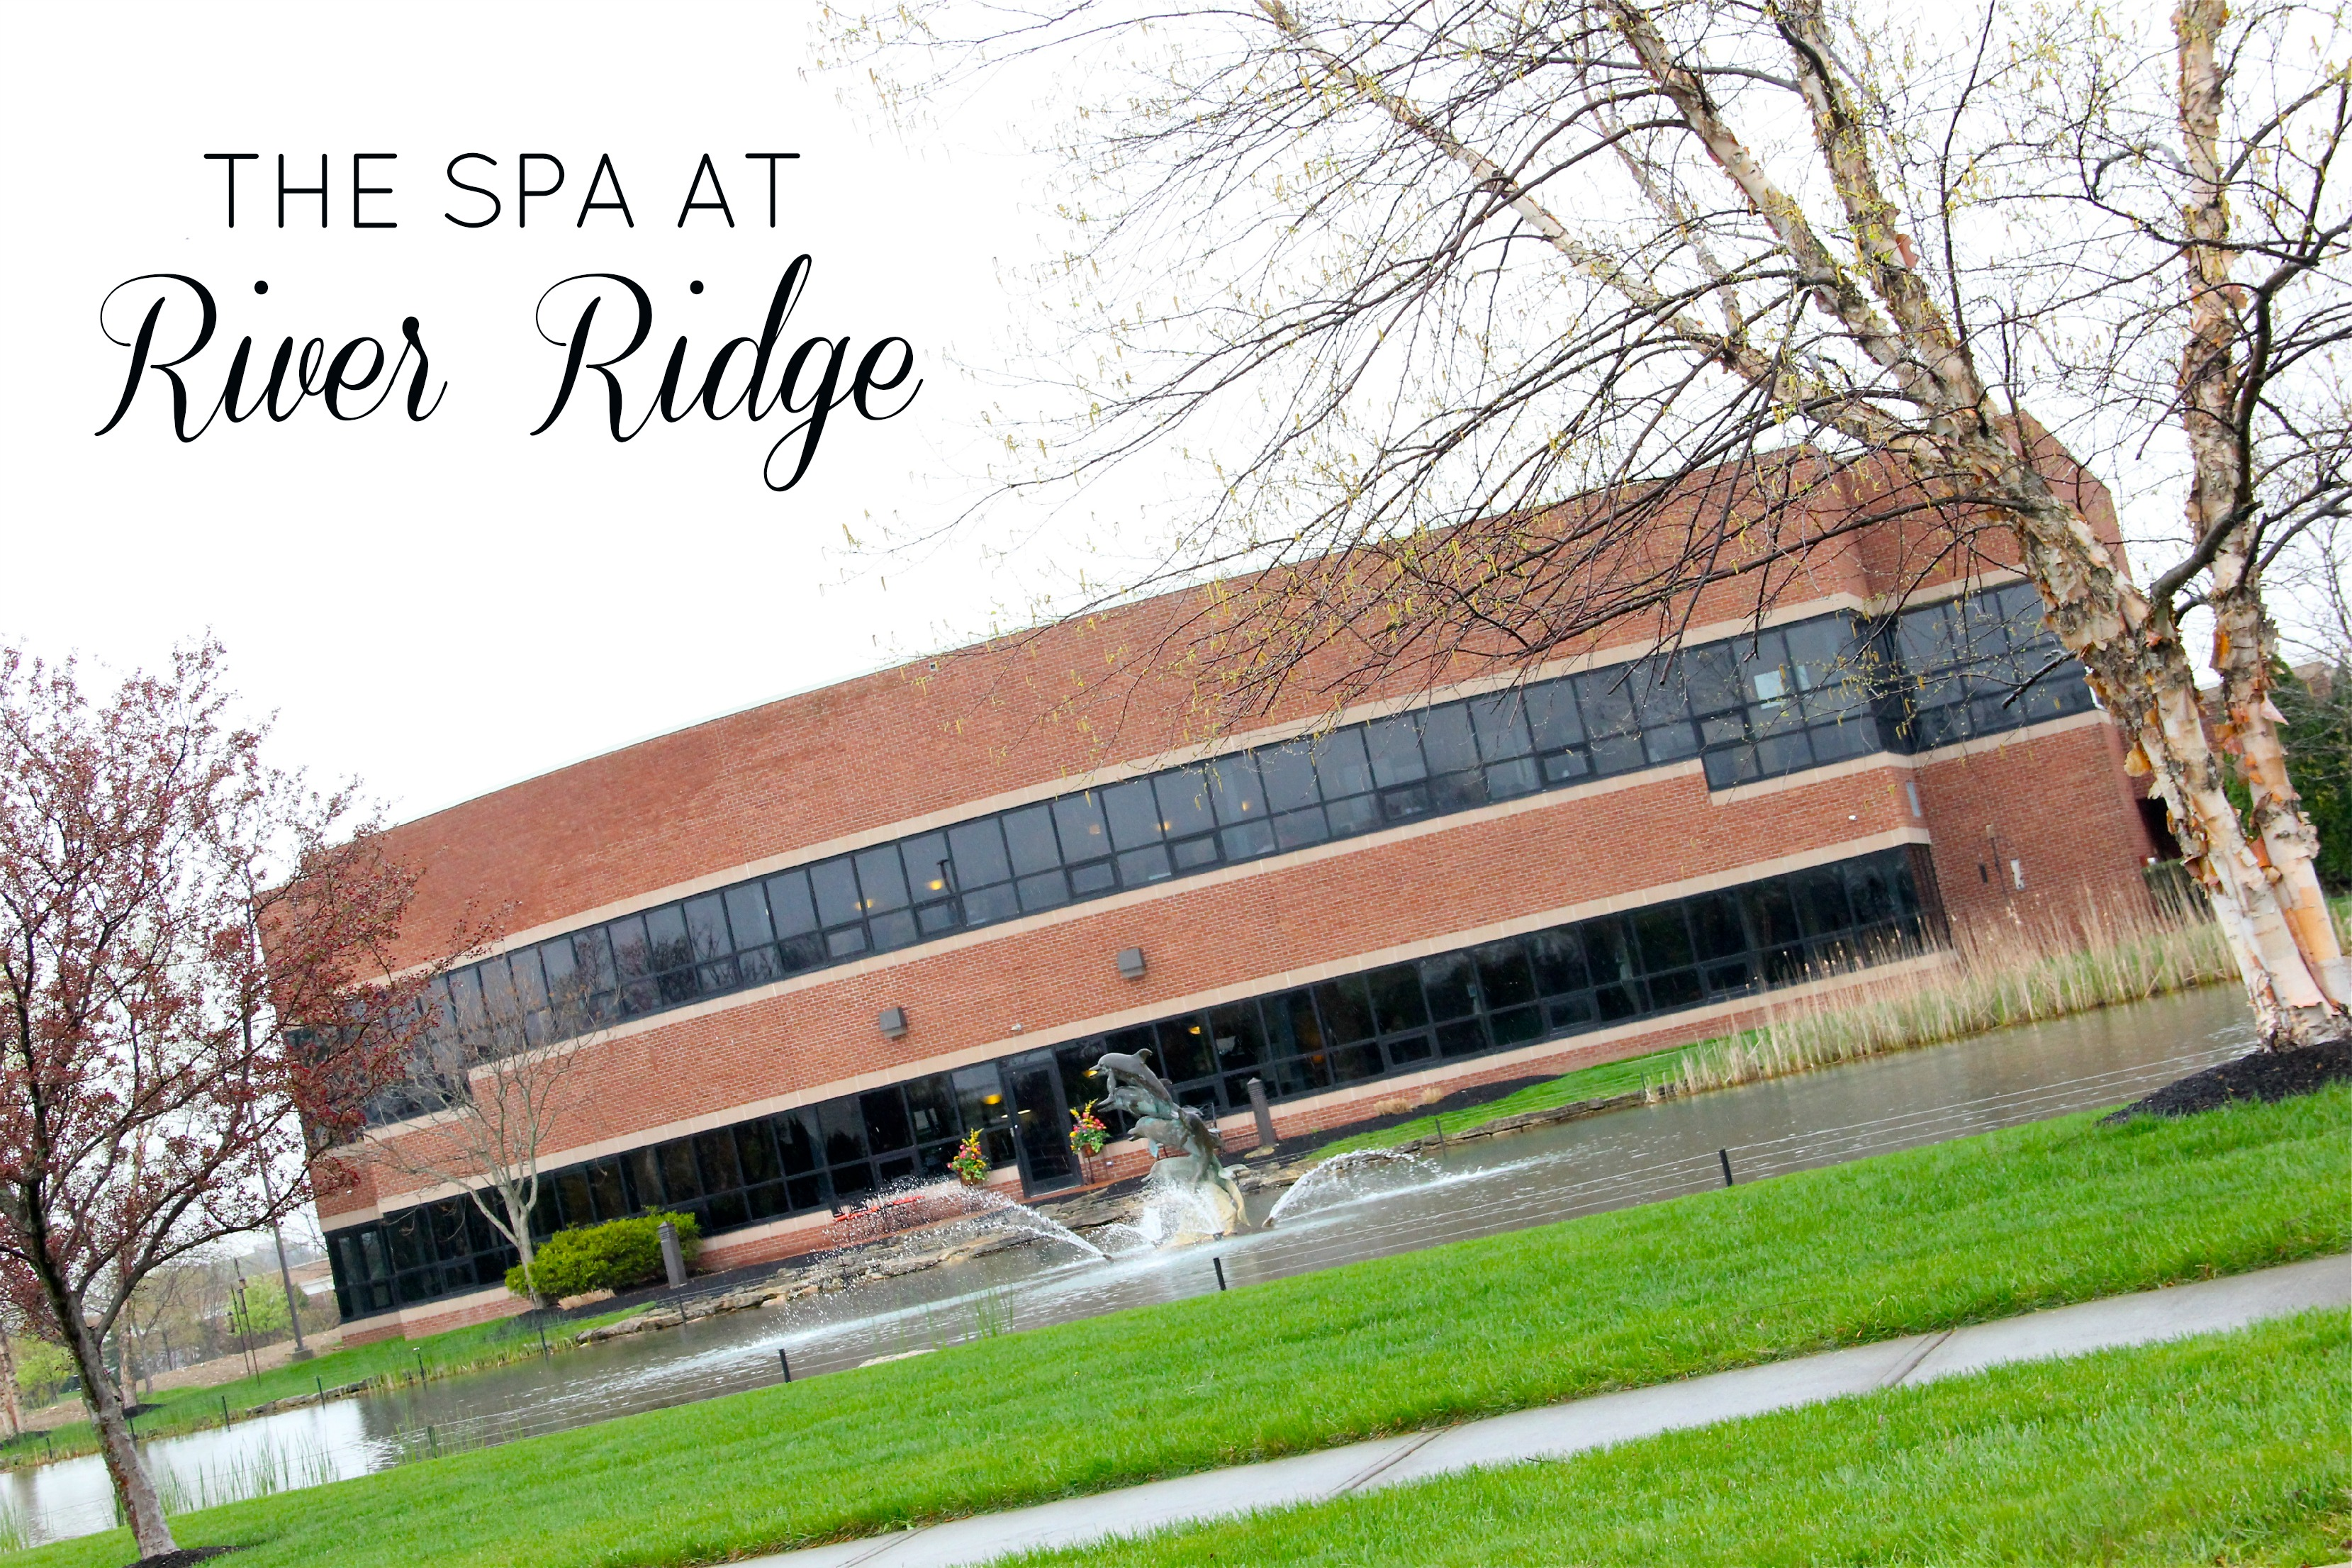 the-spa-at-river-ridge-dublin-ohio